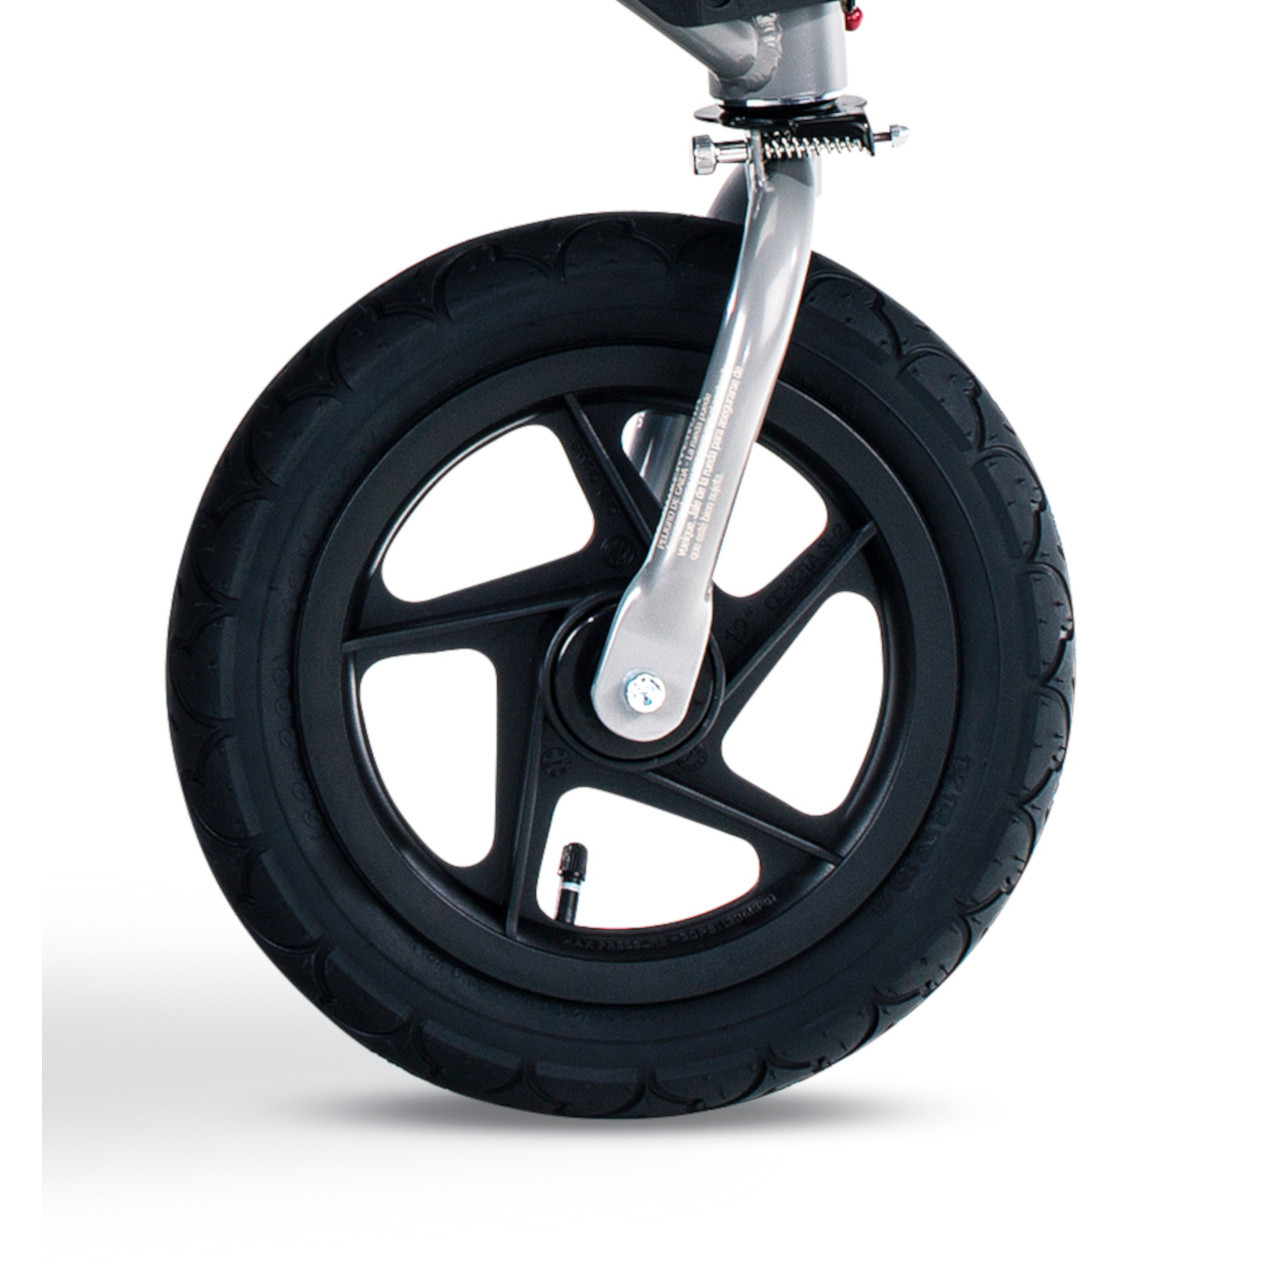 Rambler Front Wheel with Tire & Tube Installed (stroller fork not included but shown for display only)